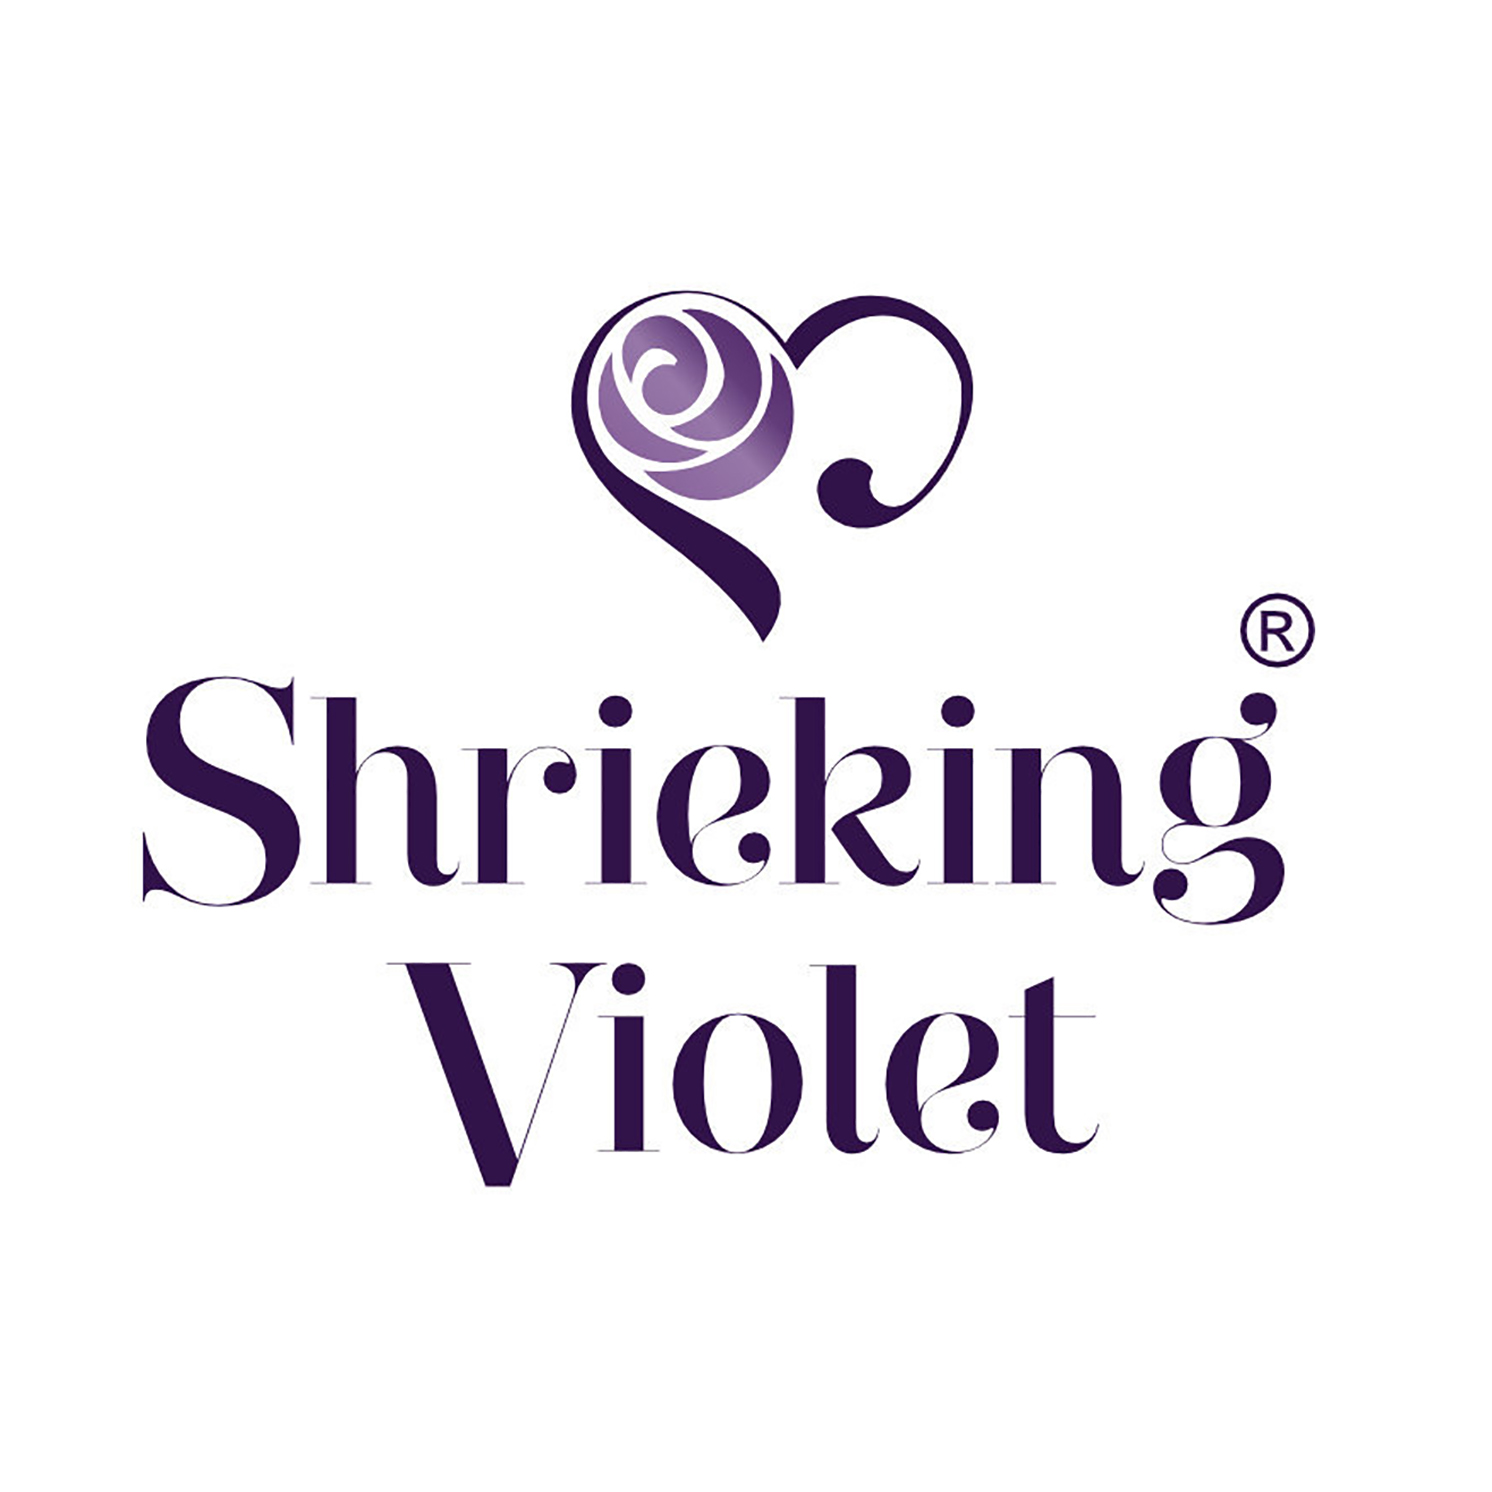 Shrieking Violet – Rse Bud Sterling Silver Round Adjustable Ring in Box